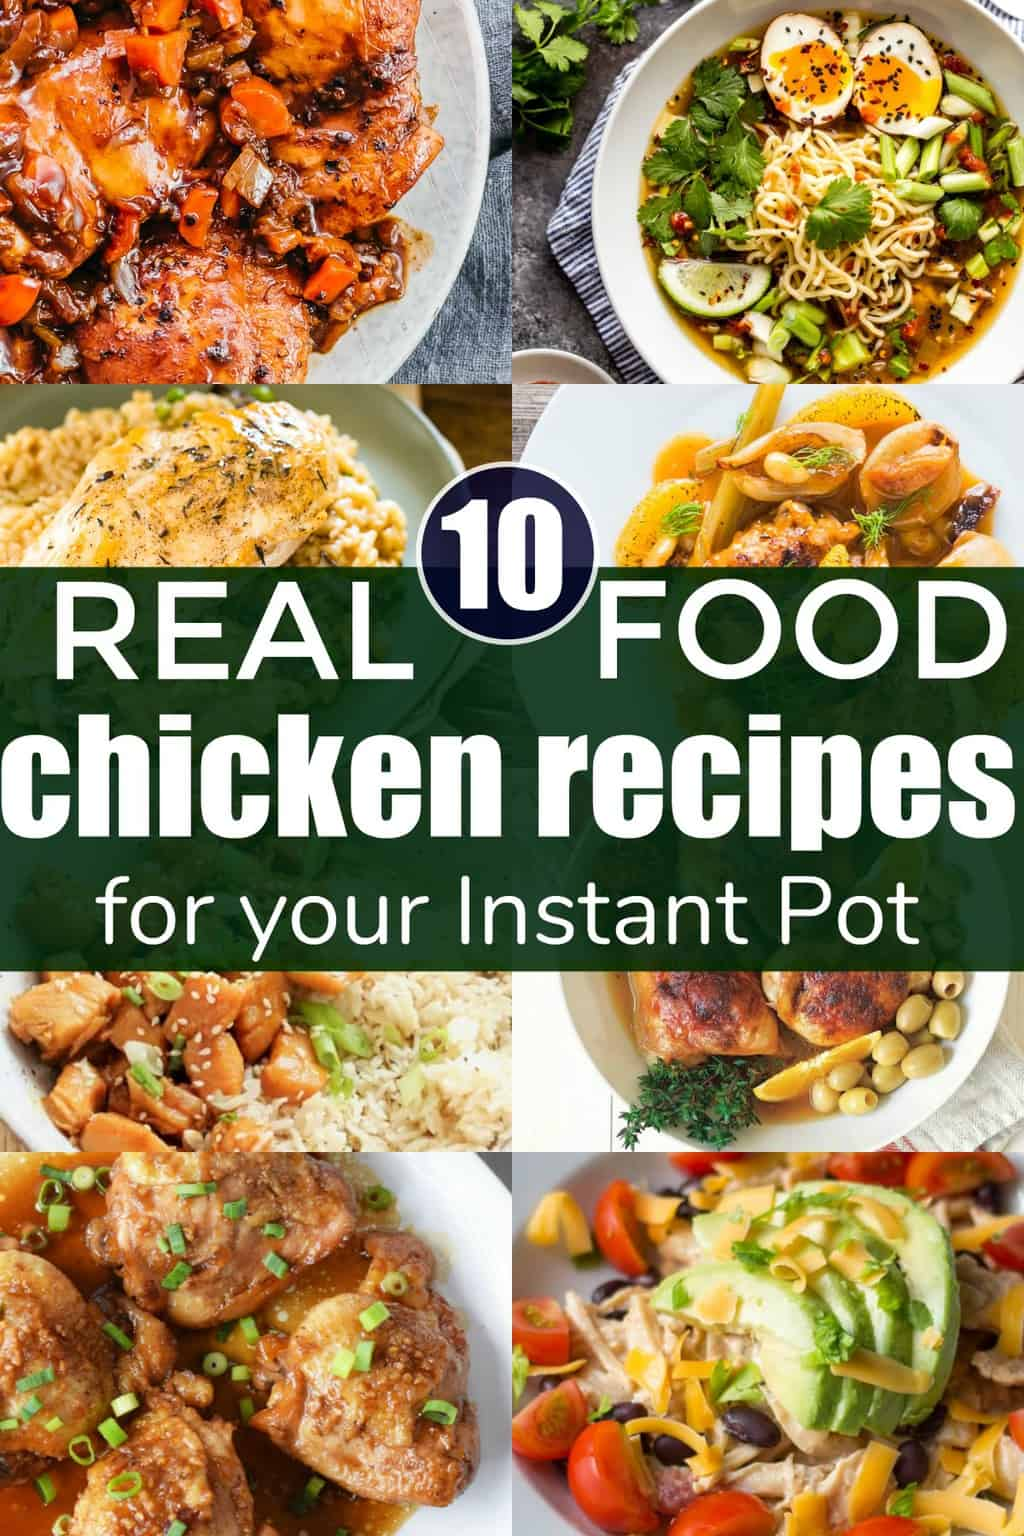 Instant Pot Chicken Recipes cover image with 8 chicken dinner photos